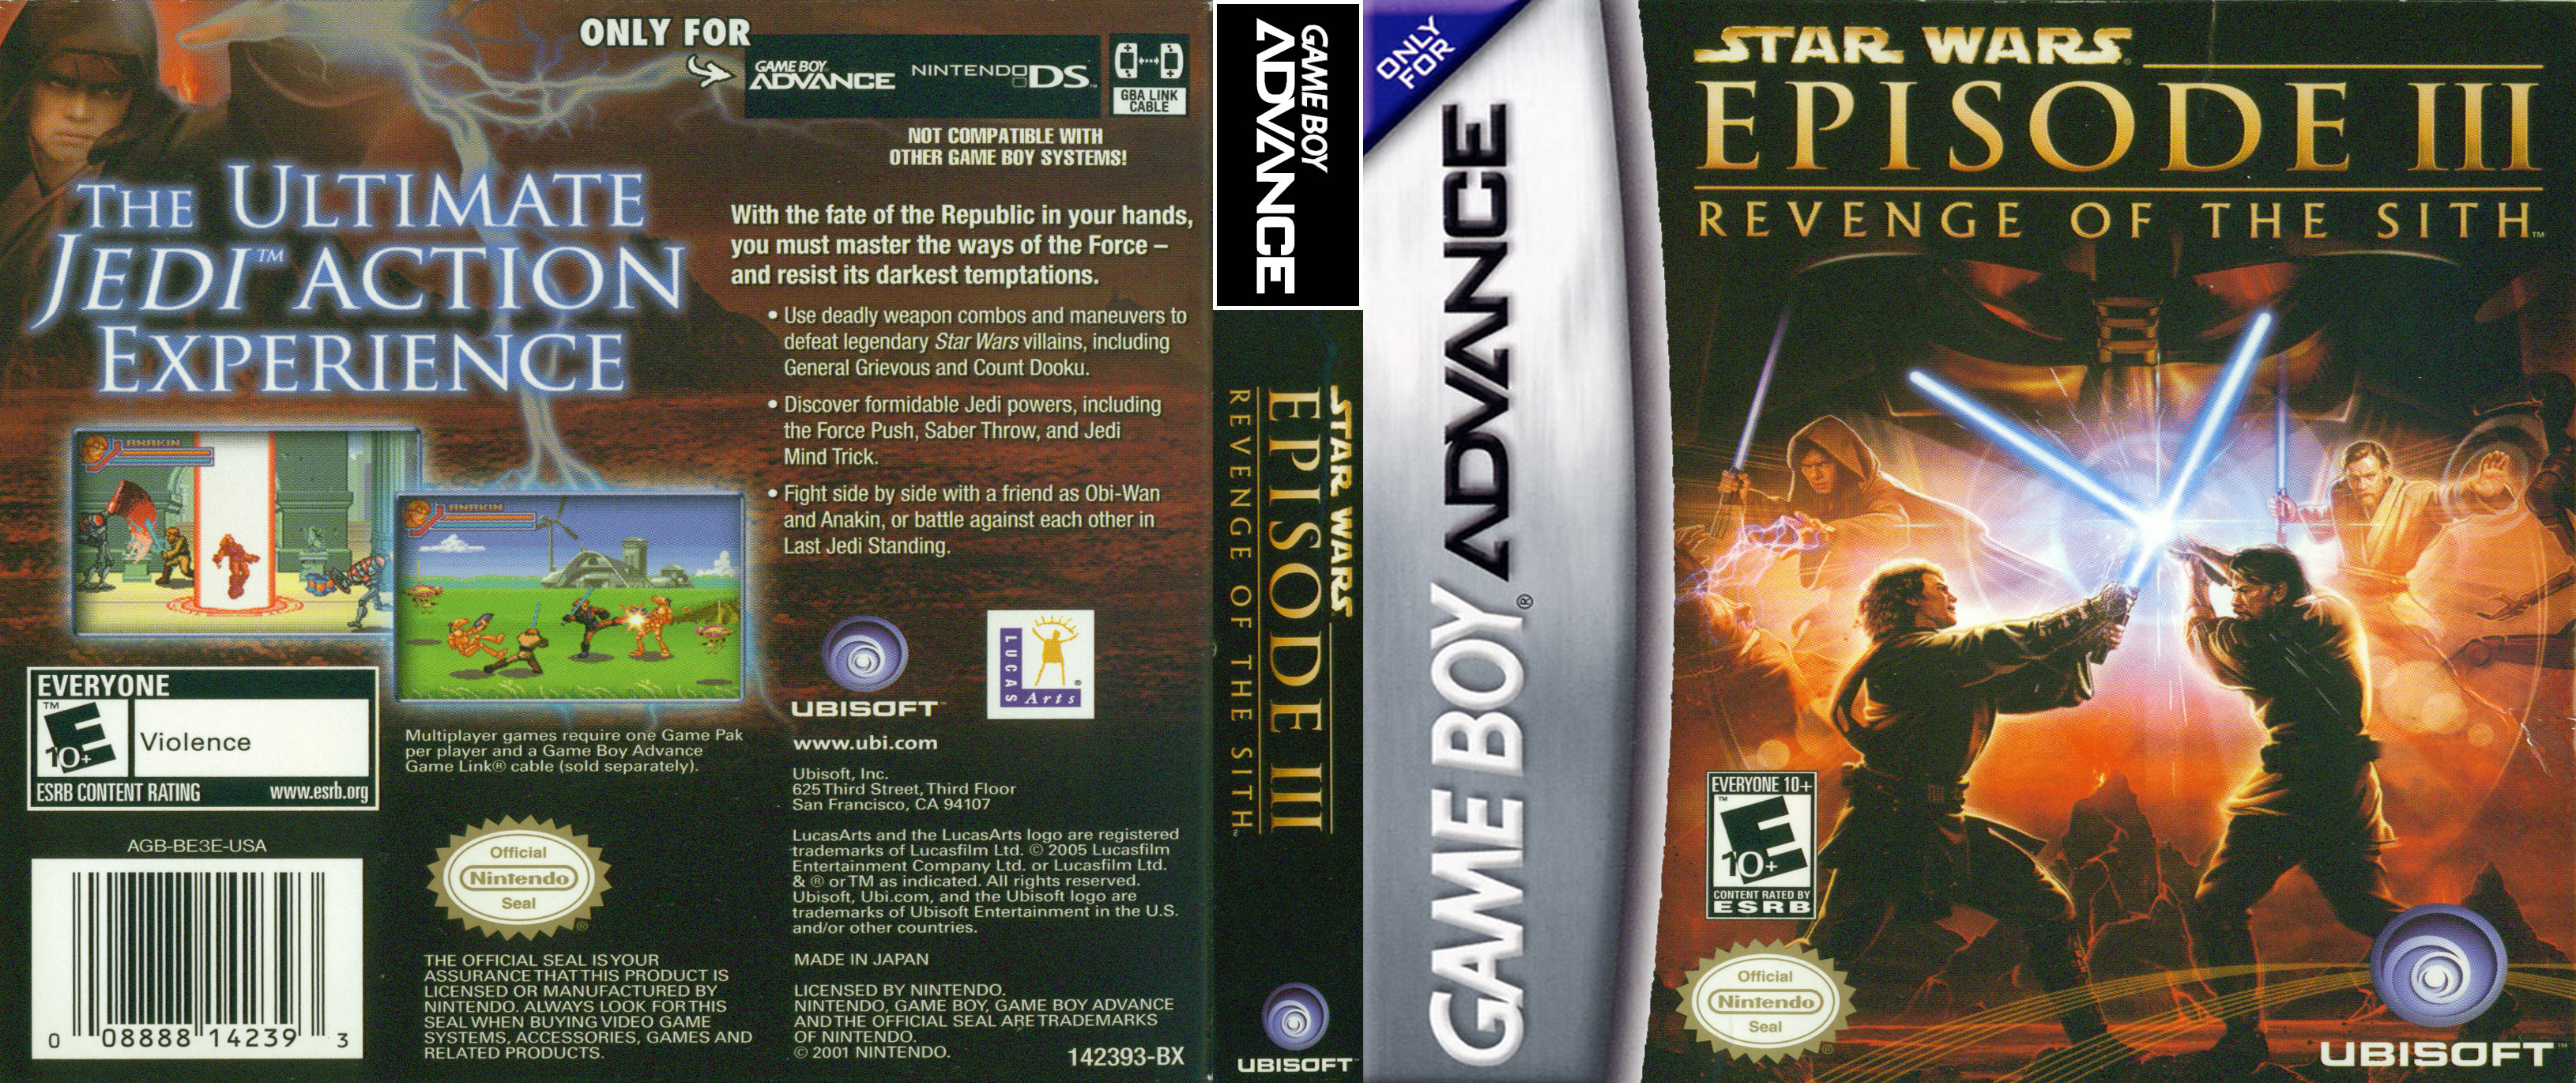 Star Wars Episode 3 Gameboy Advance Covers Cover Century Over 500 000 Album Art Covers For Free